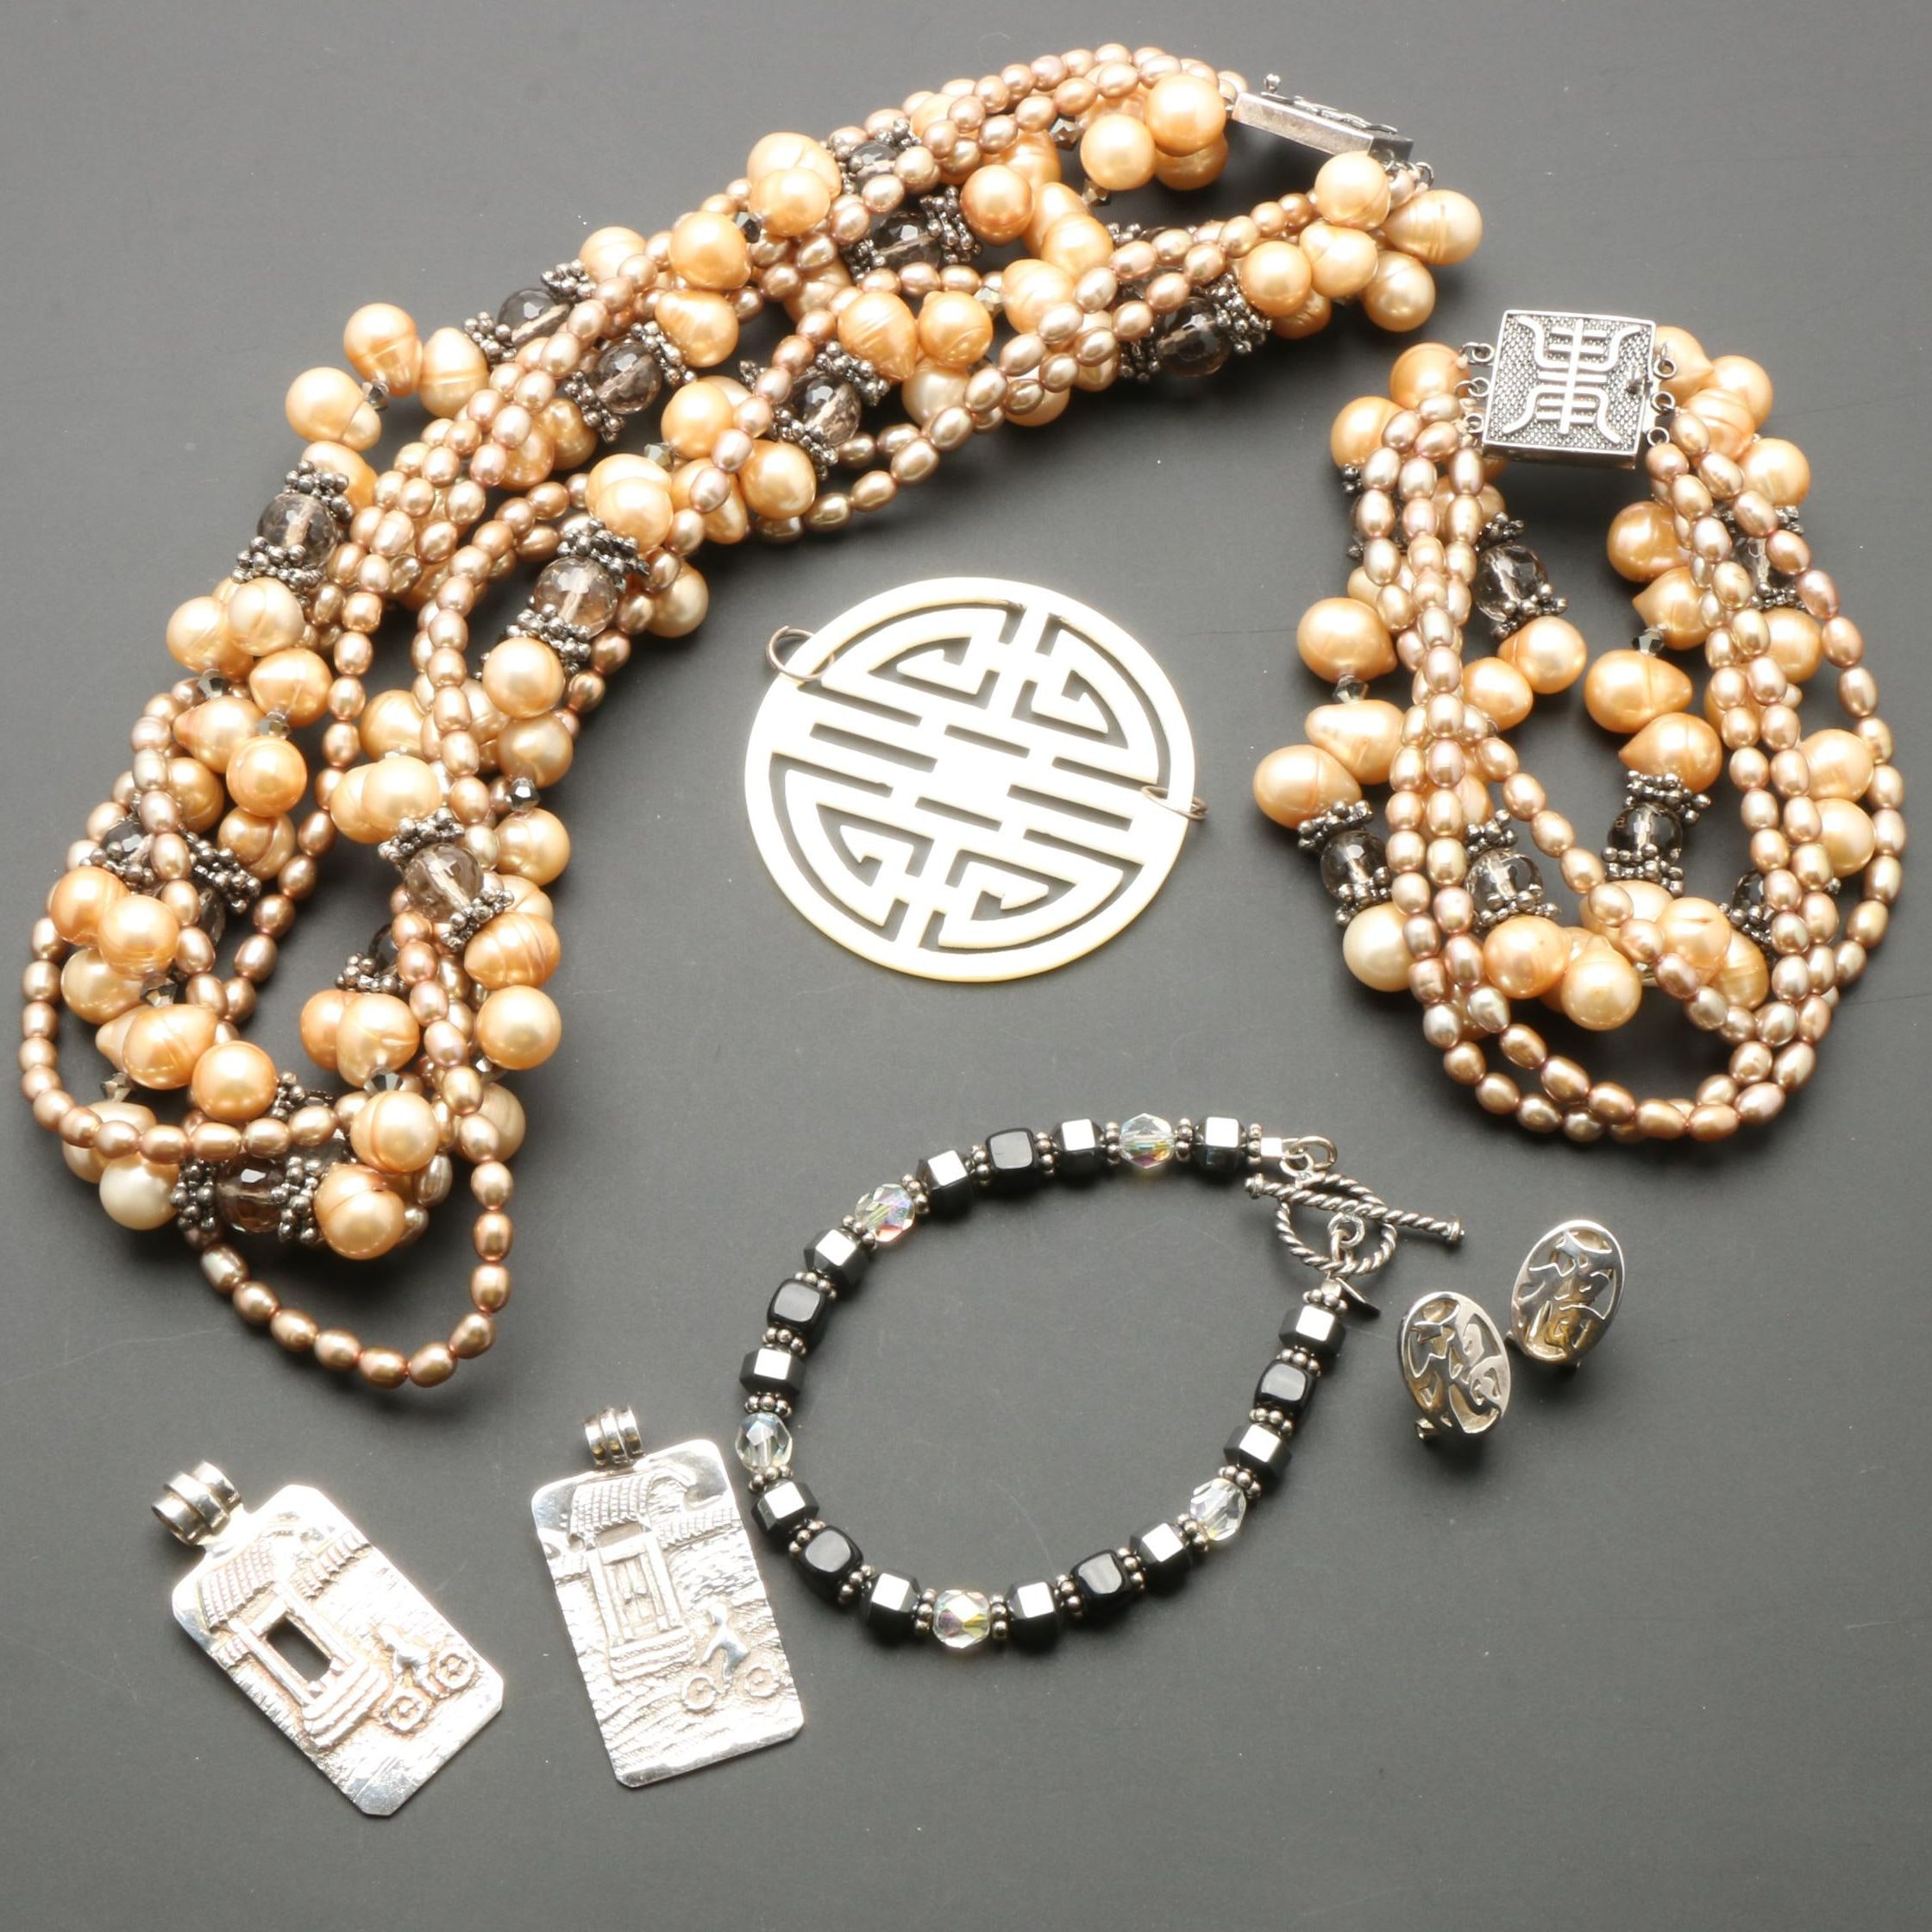 Assortment of Sterling Silver Jewelry Including Cultured Pearls